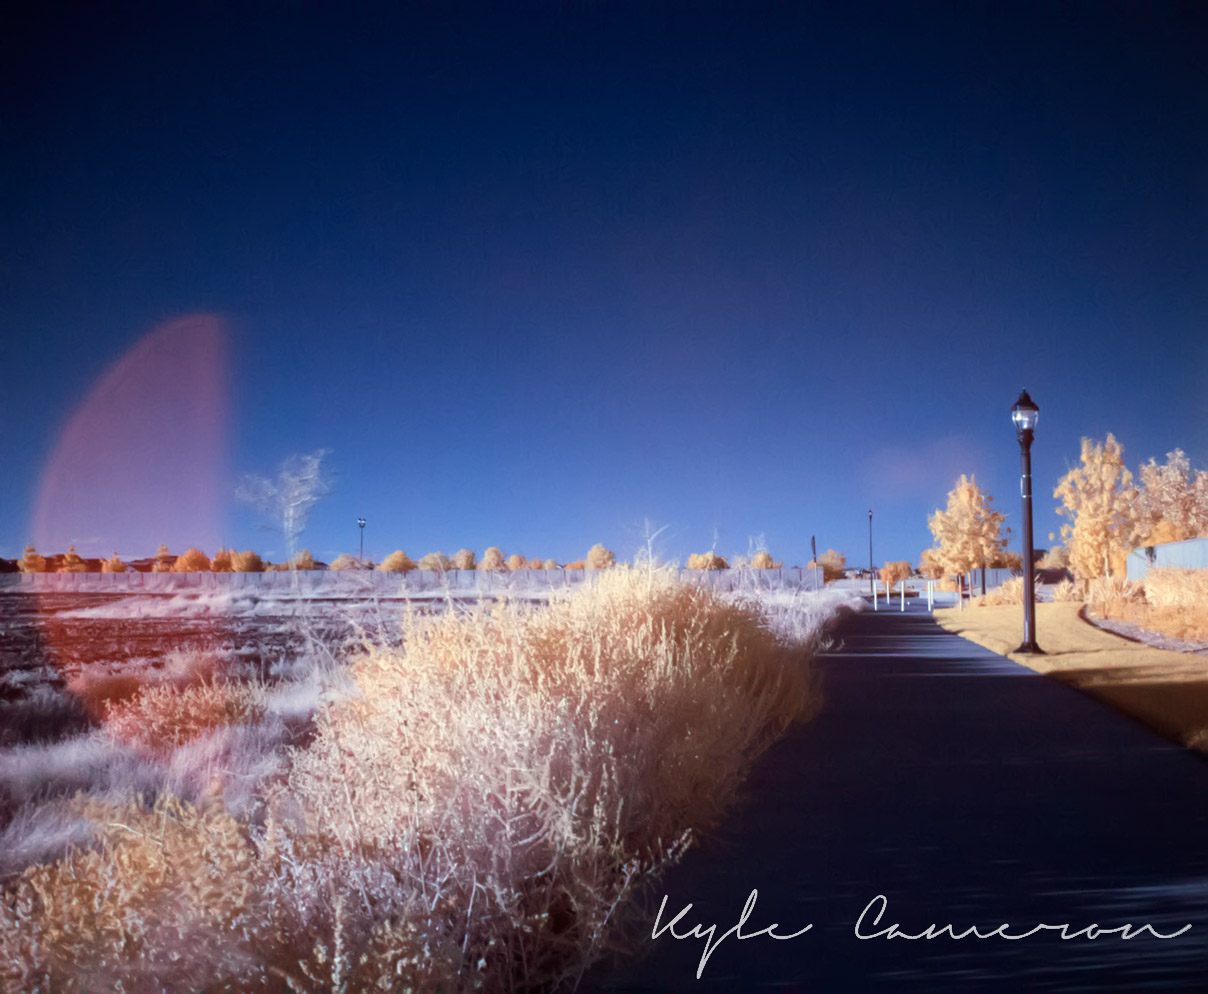 Infrared 1500x994 70 quality (4 of 10).jpg